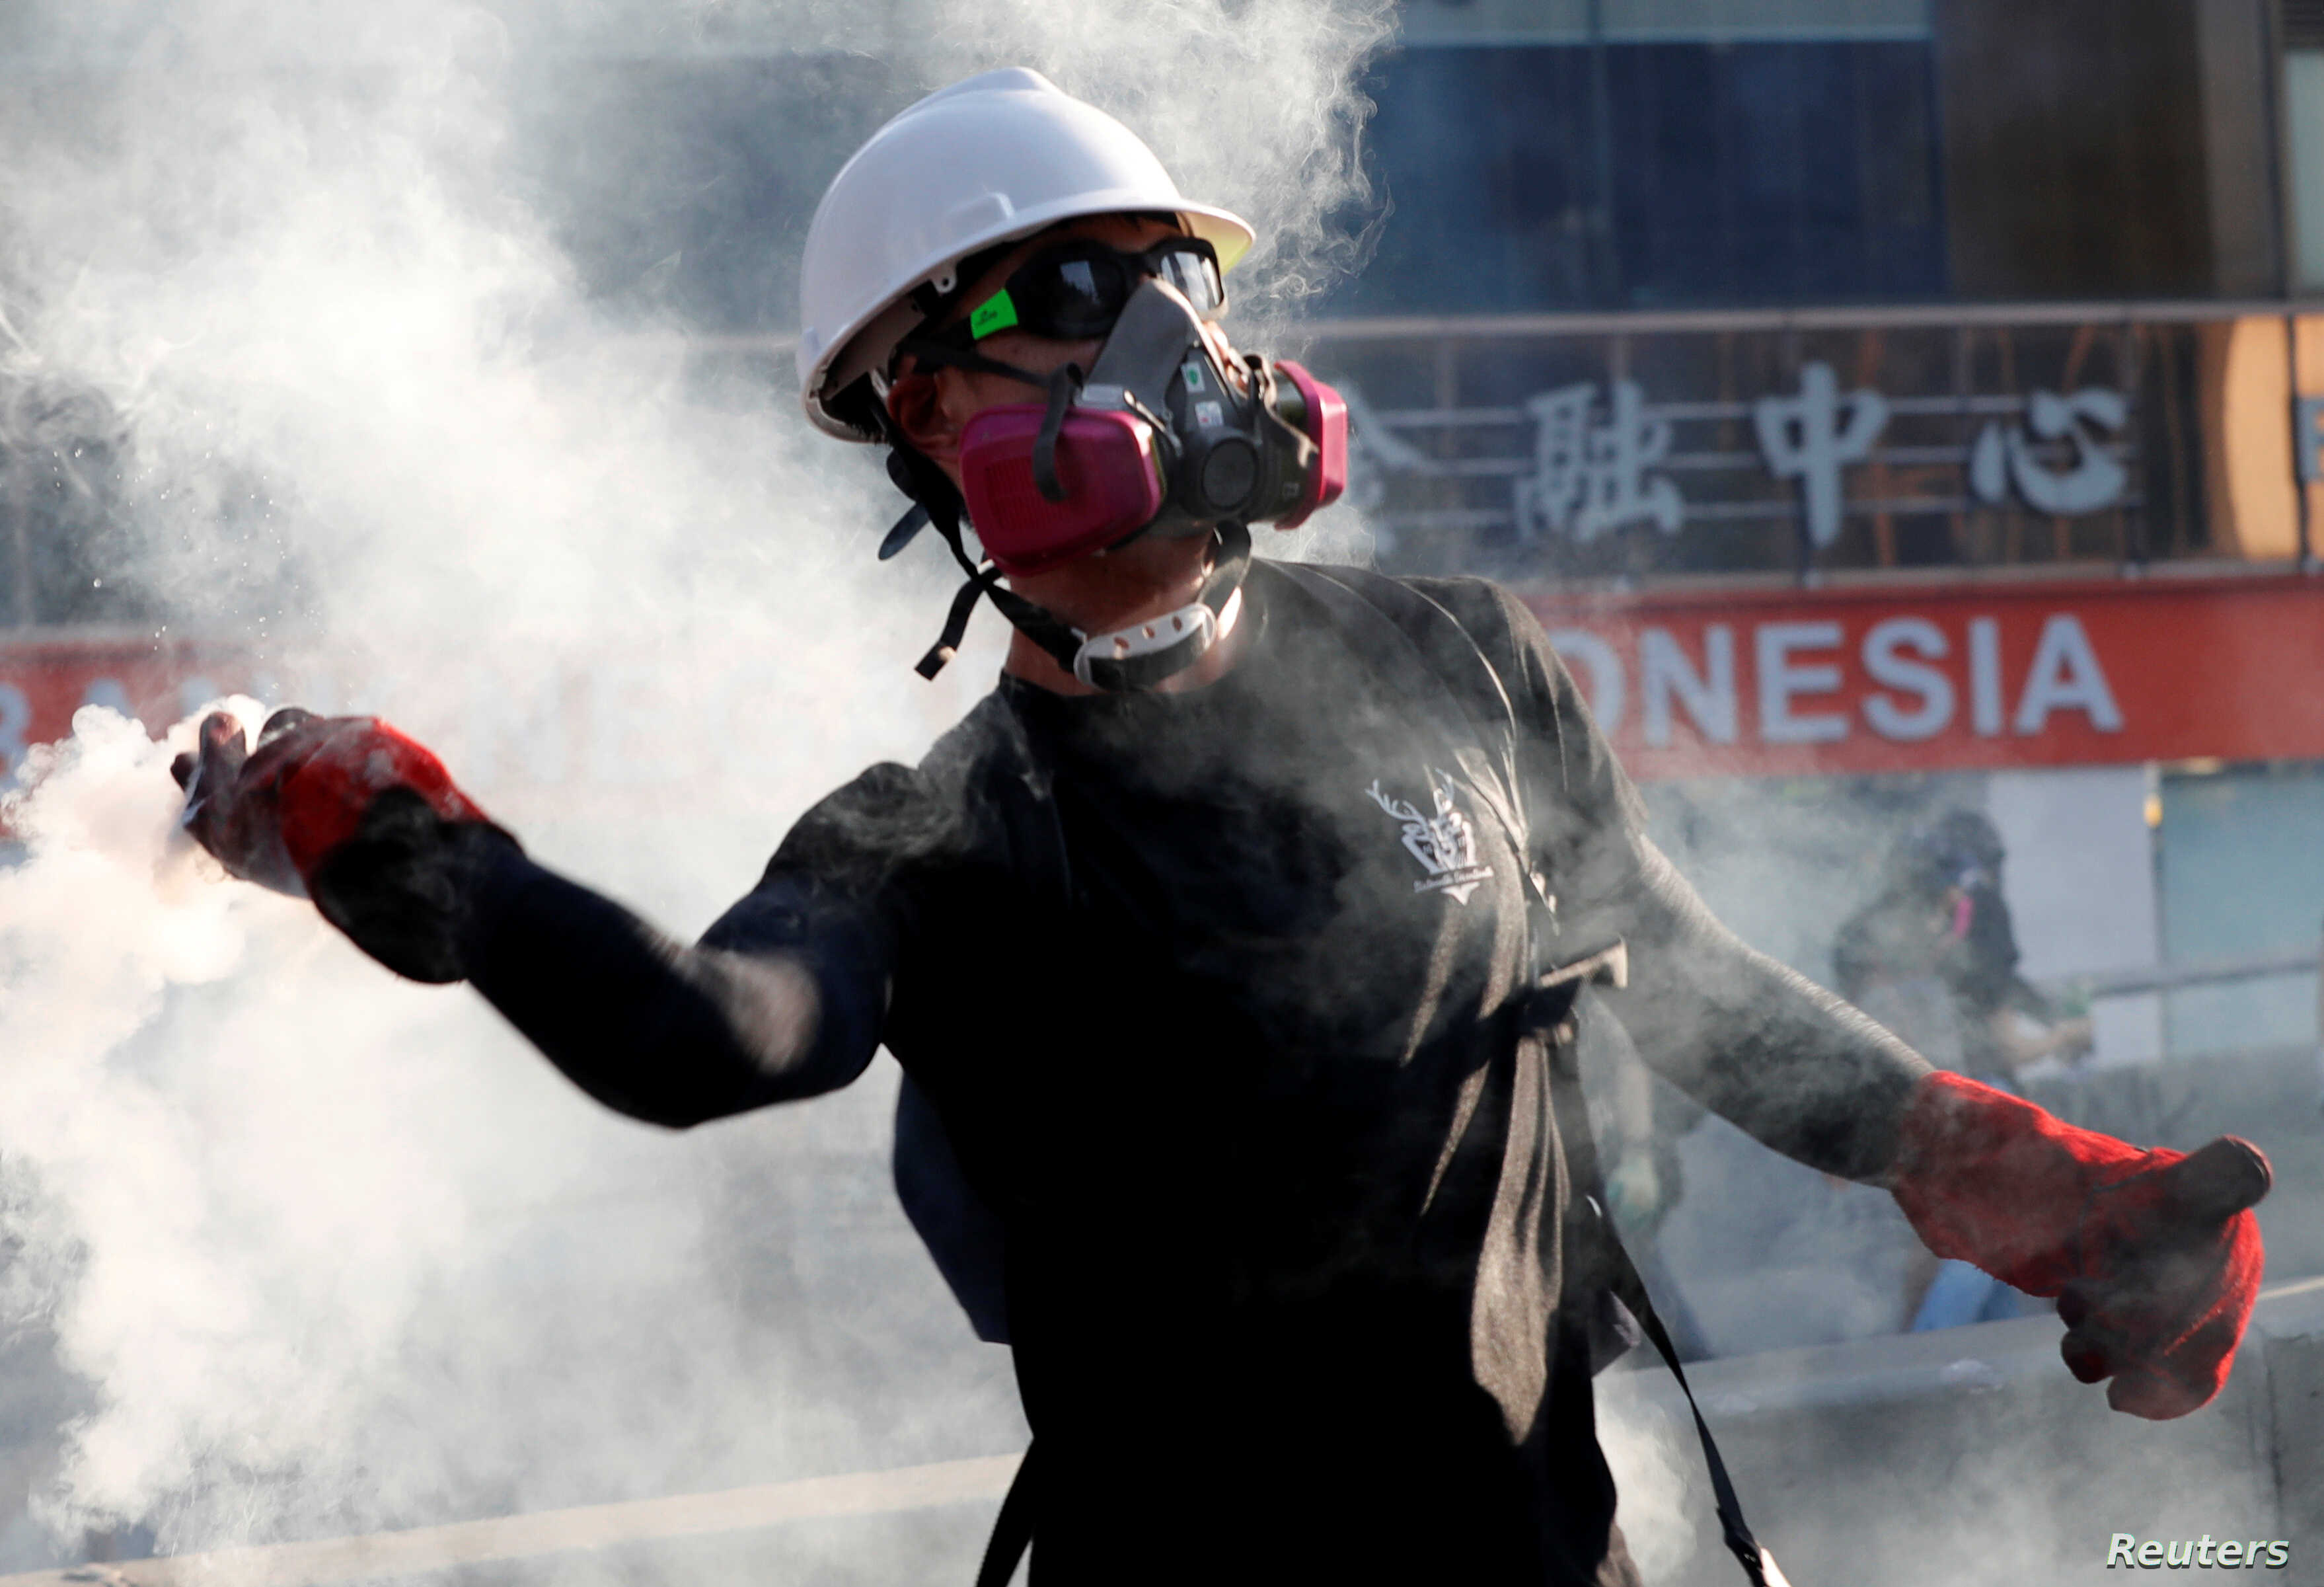 A protester throws a tear gas canister back at the police during a demonstration in support of the city-wide strike and to call for democratic reforms in Hong Kong, China, Aug. 5, 2019.